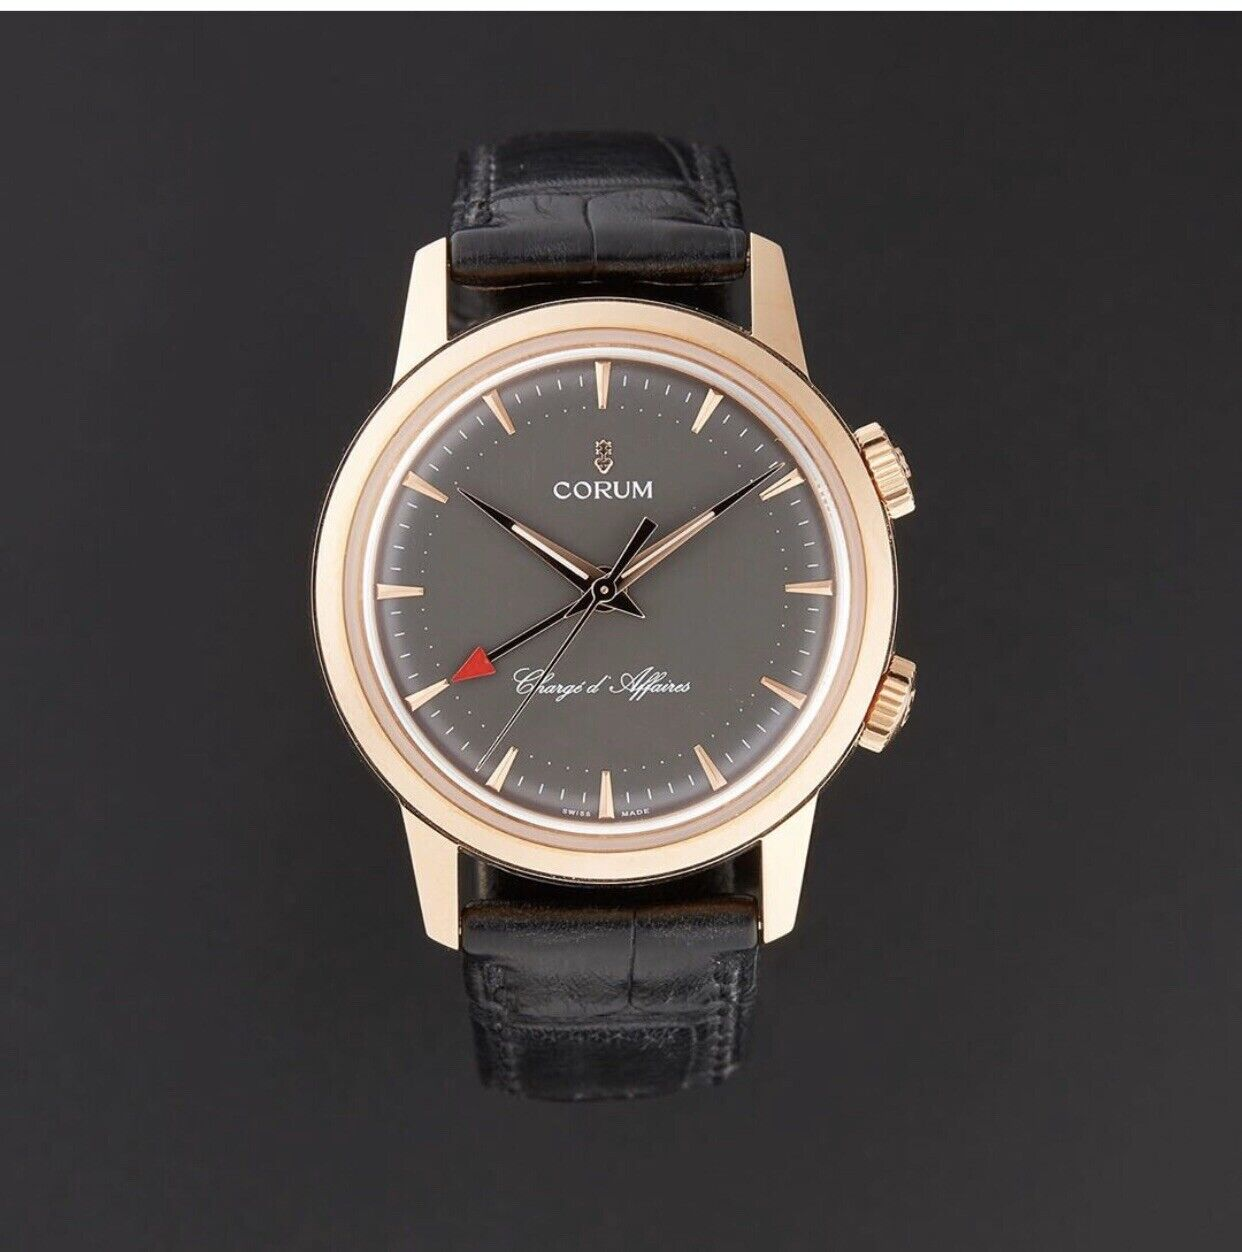 CORUM HERITAGE VINTAGE CHARGE D'AFFAIRE ONLY 50 PIECES IN 18k. ROSE GOLD. 100% - watch picture 1